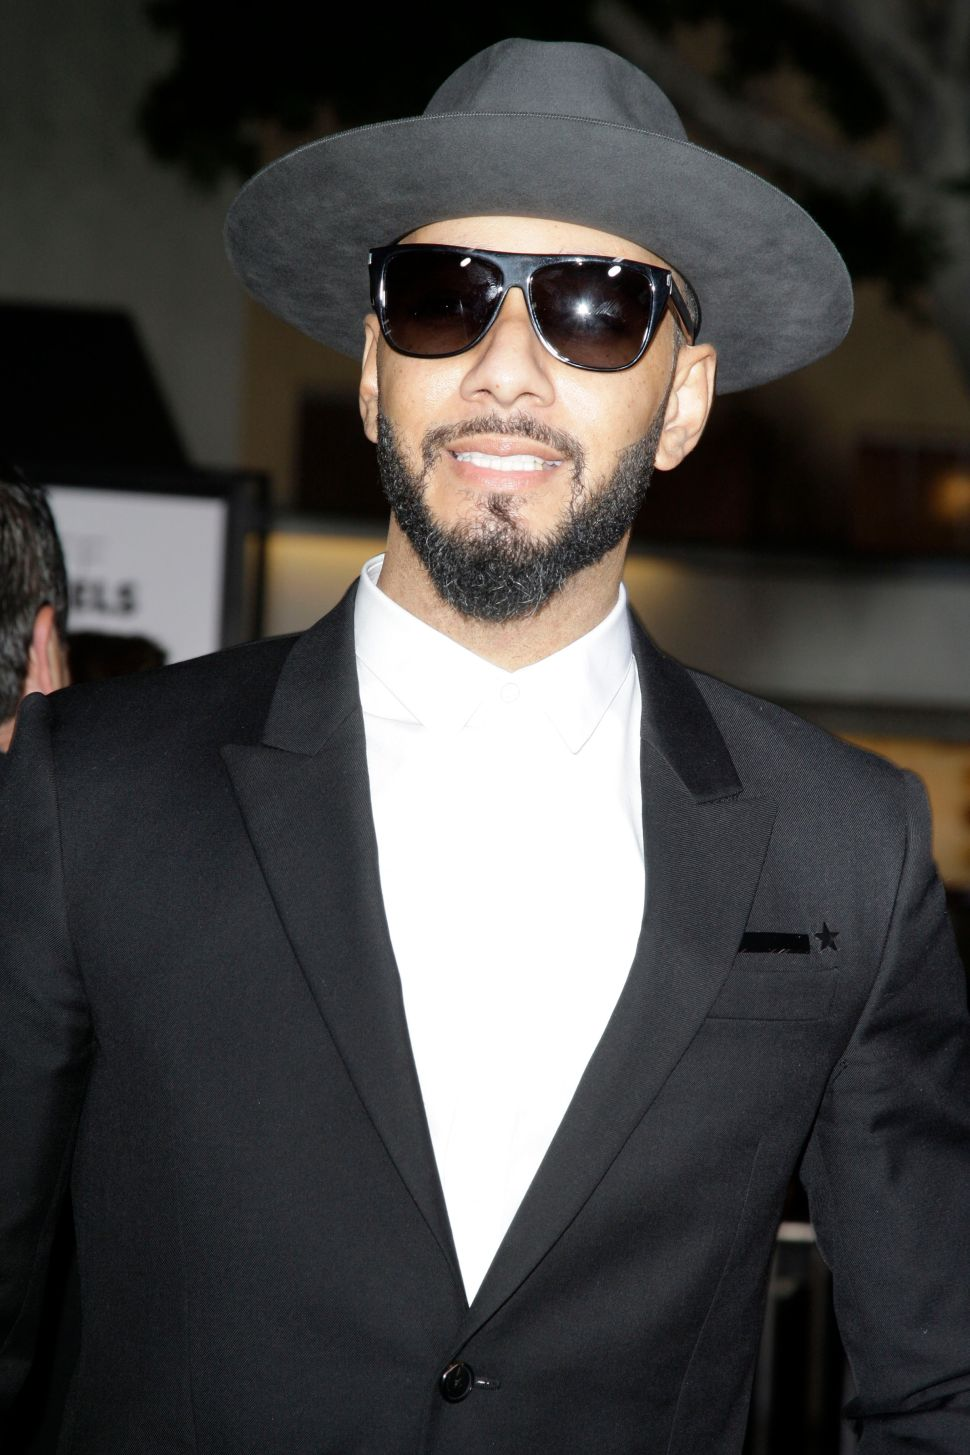 Swizz Beatz Will Open a Soho House-Type Club for Artists in the Meatpacking District